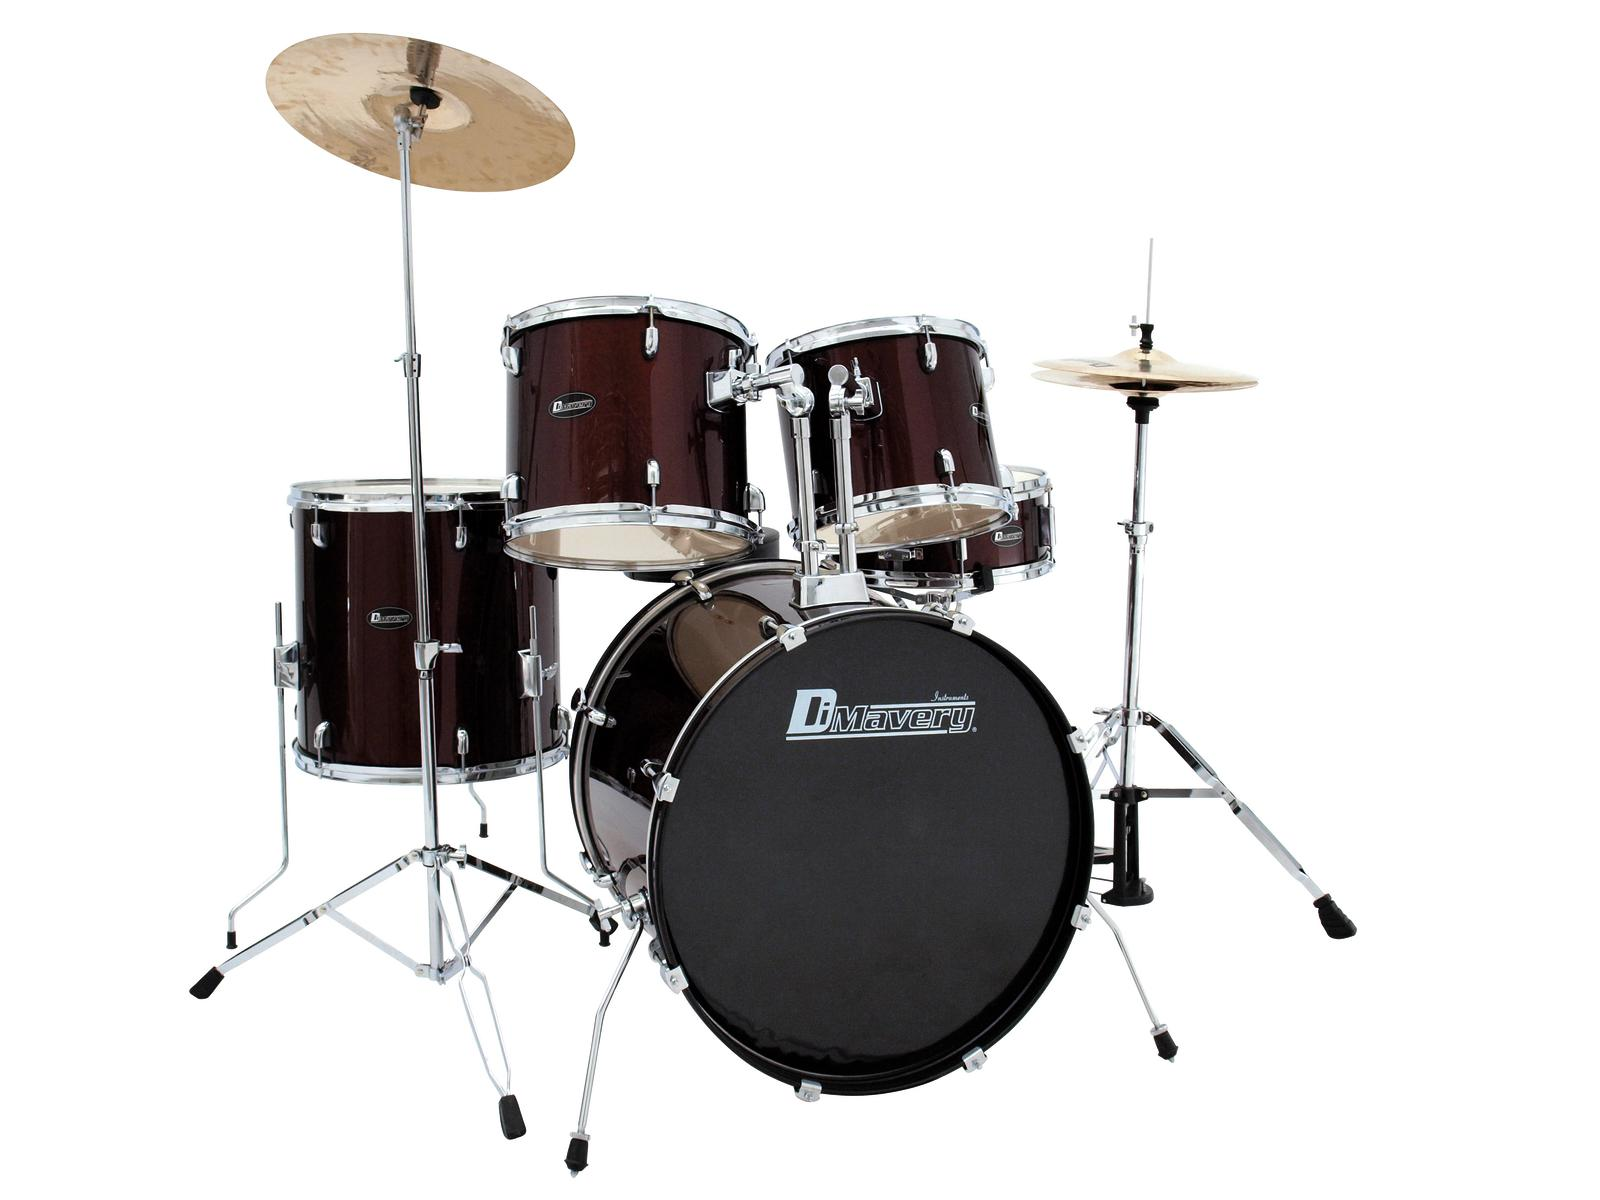 DIMAVERY DS-205 Drum set, argento